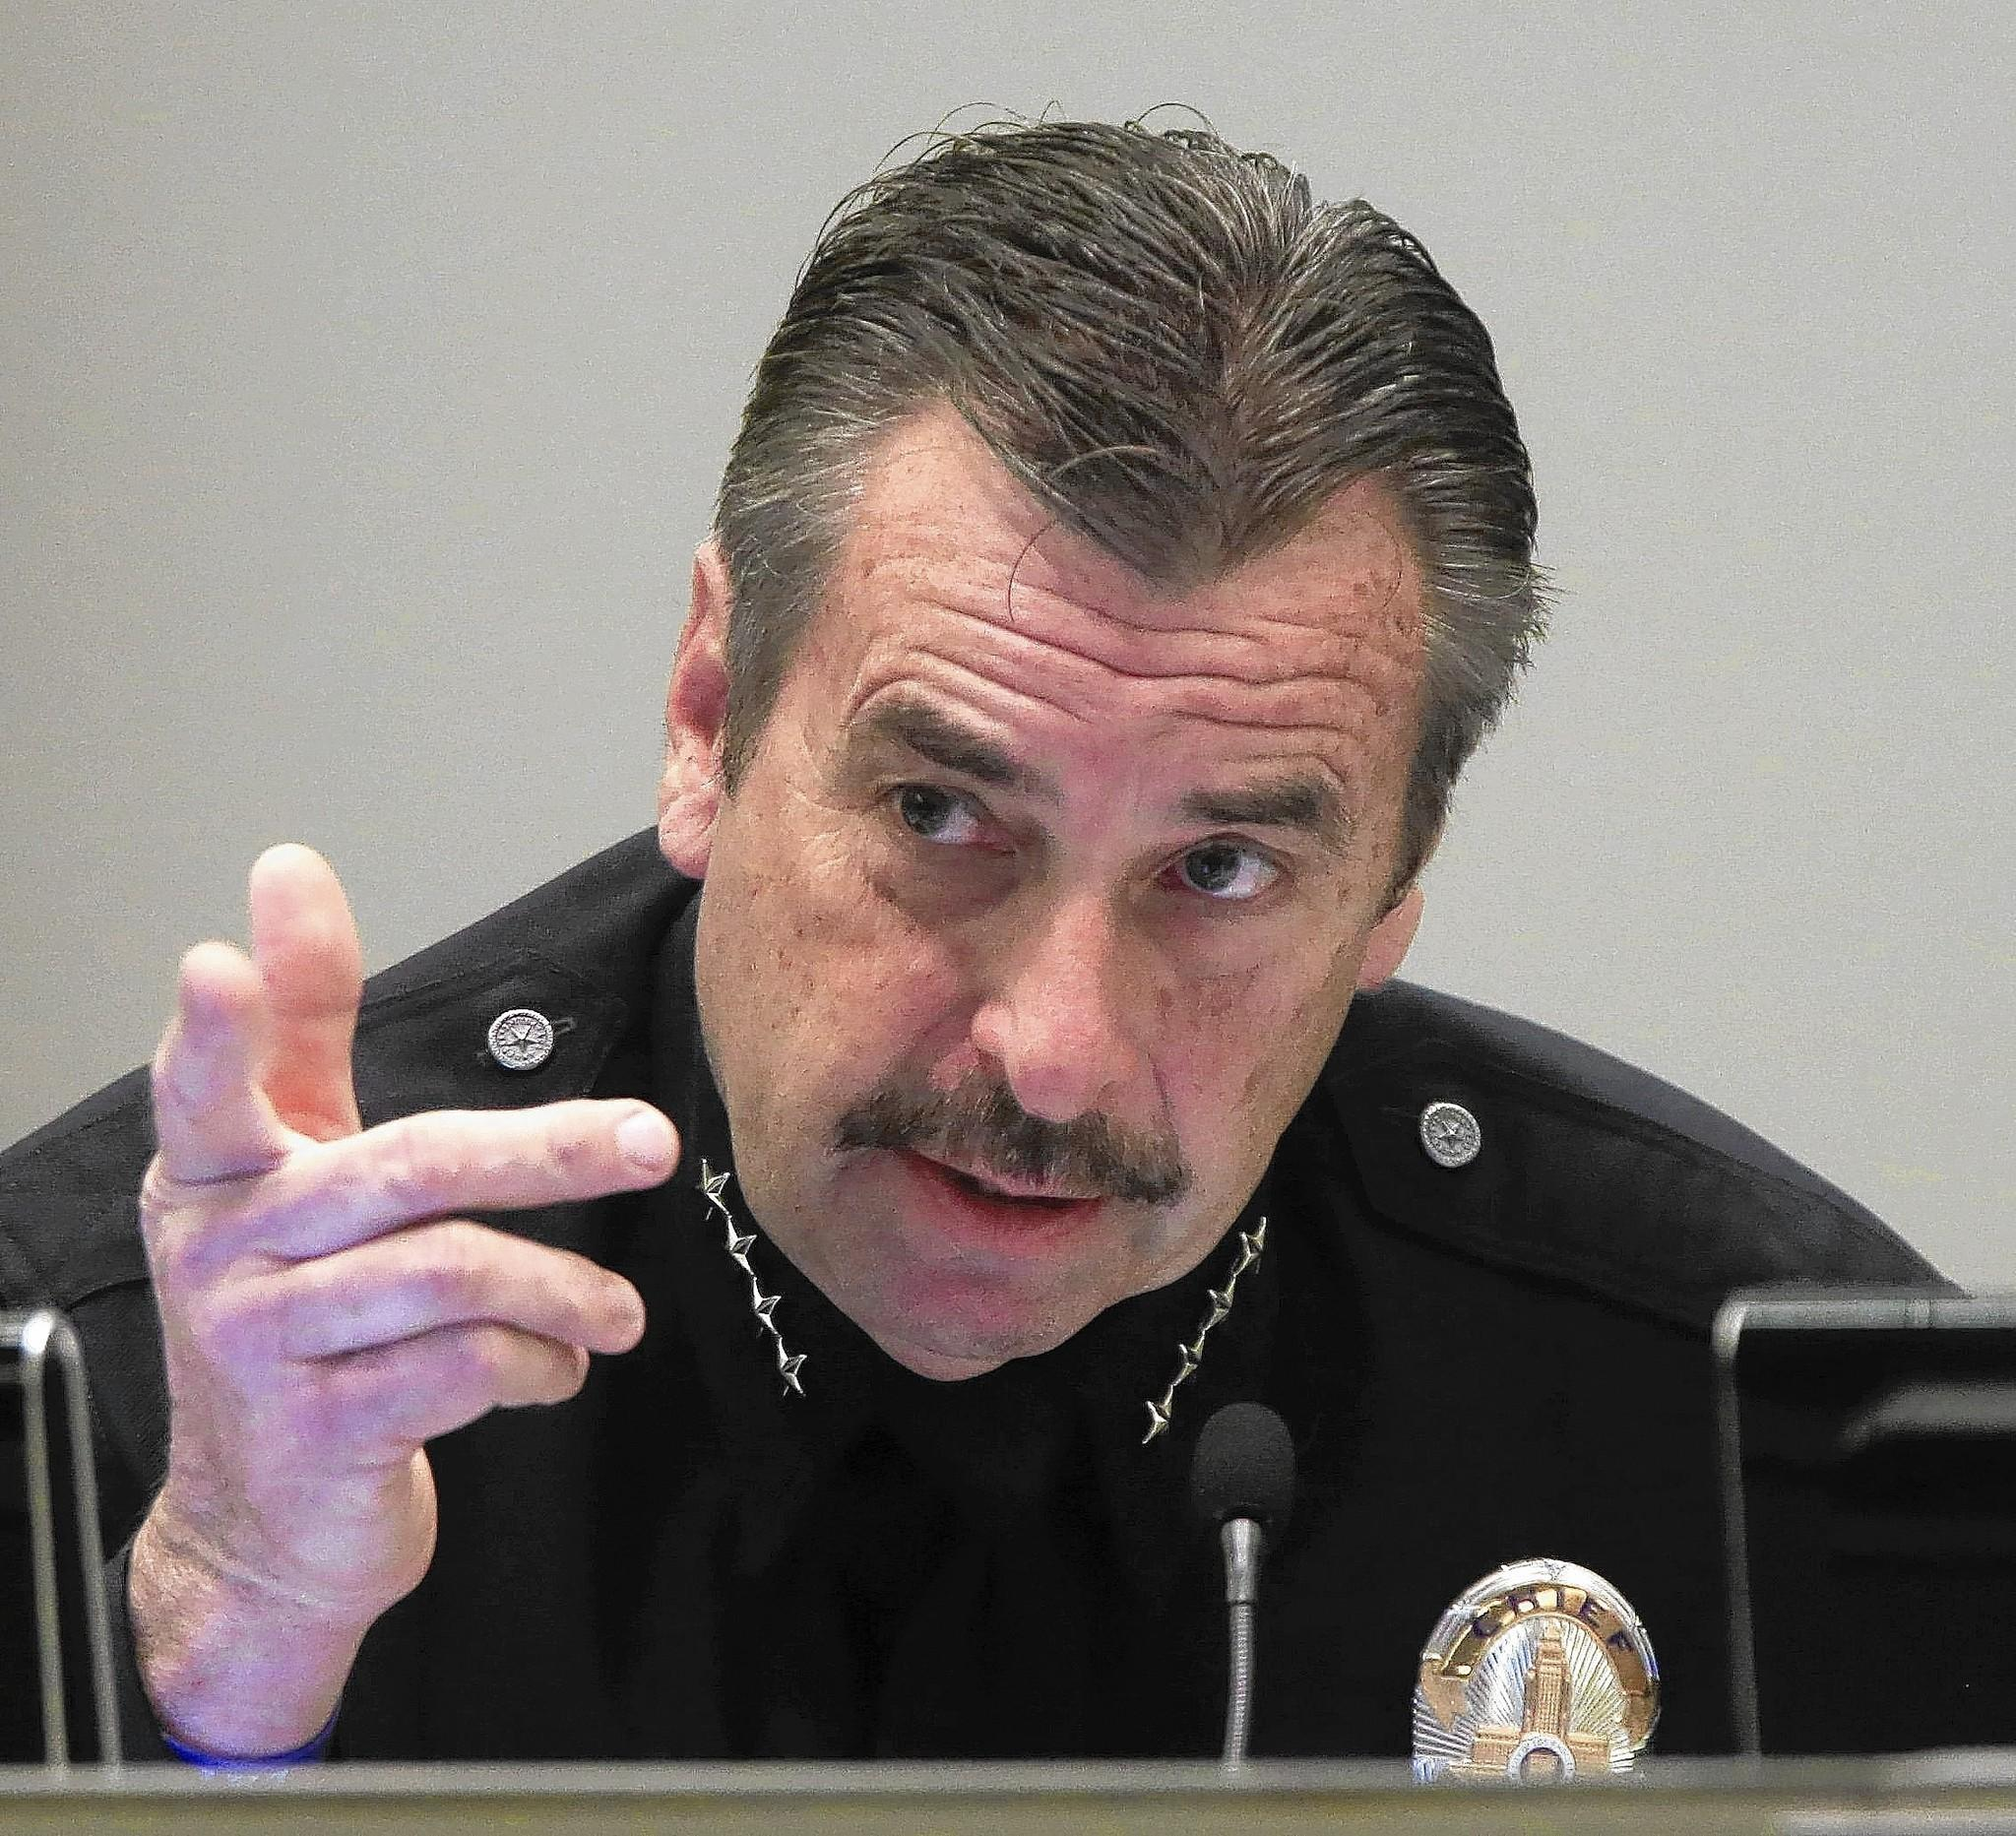 LAPD Chief Charlie Beck and other top officials learned about officers tampering with recording equipment last summer but chose not to investigate which officers were responsible.